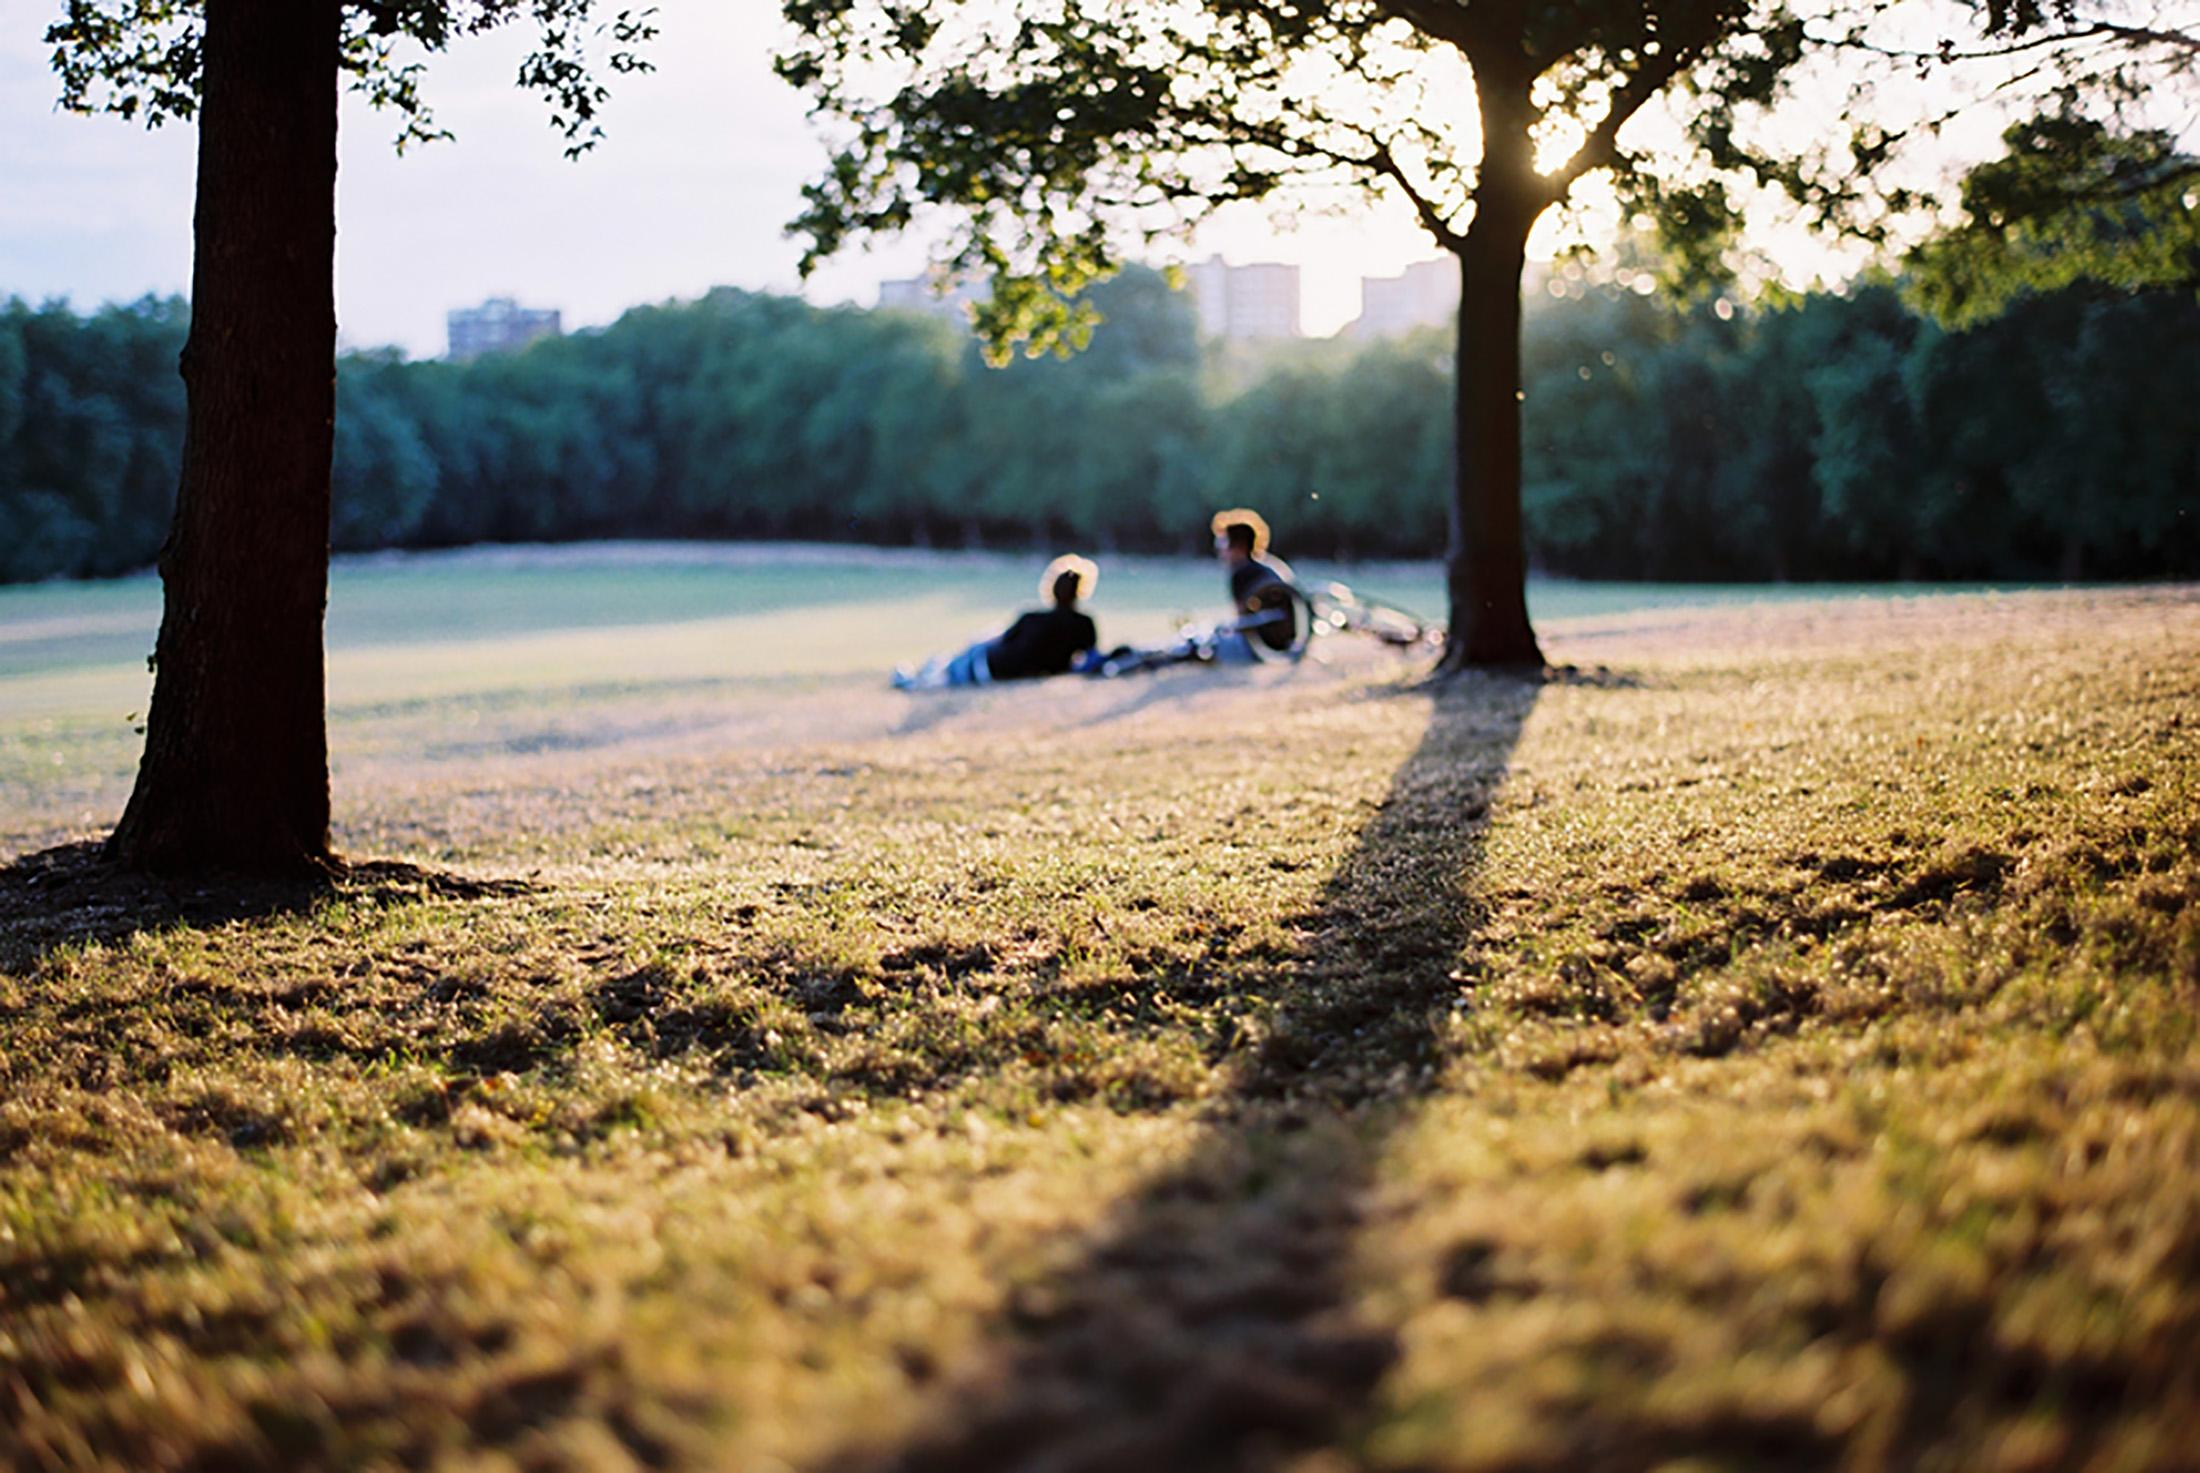 Two people laying in a field in the distance